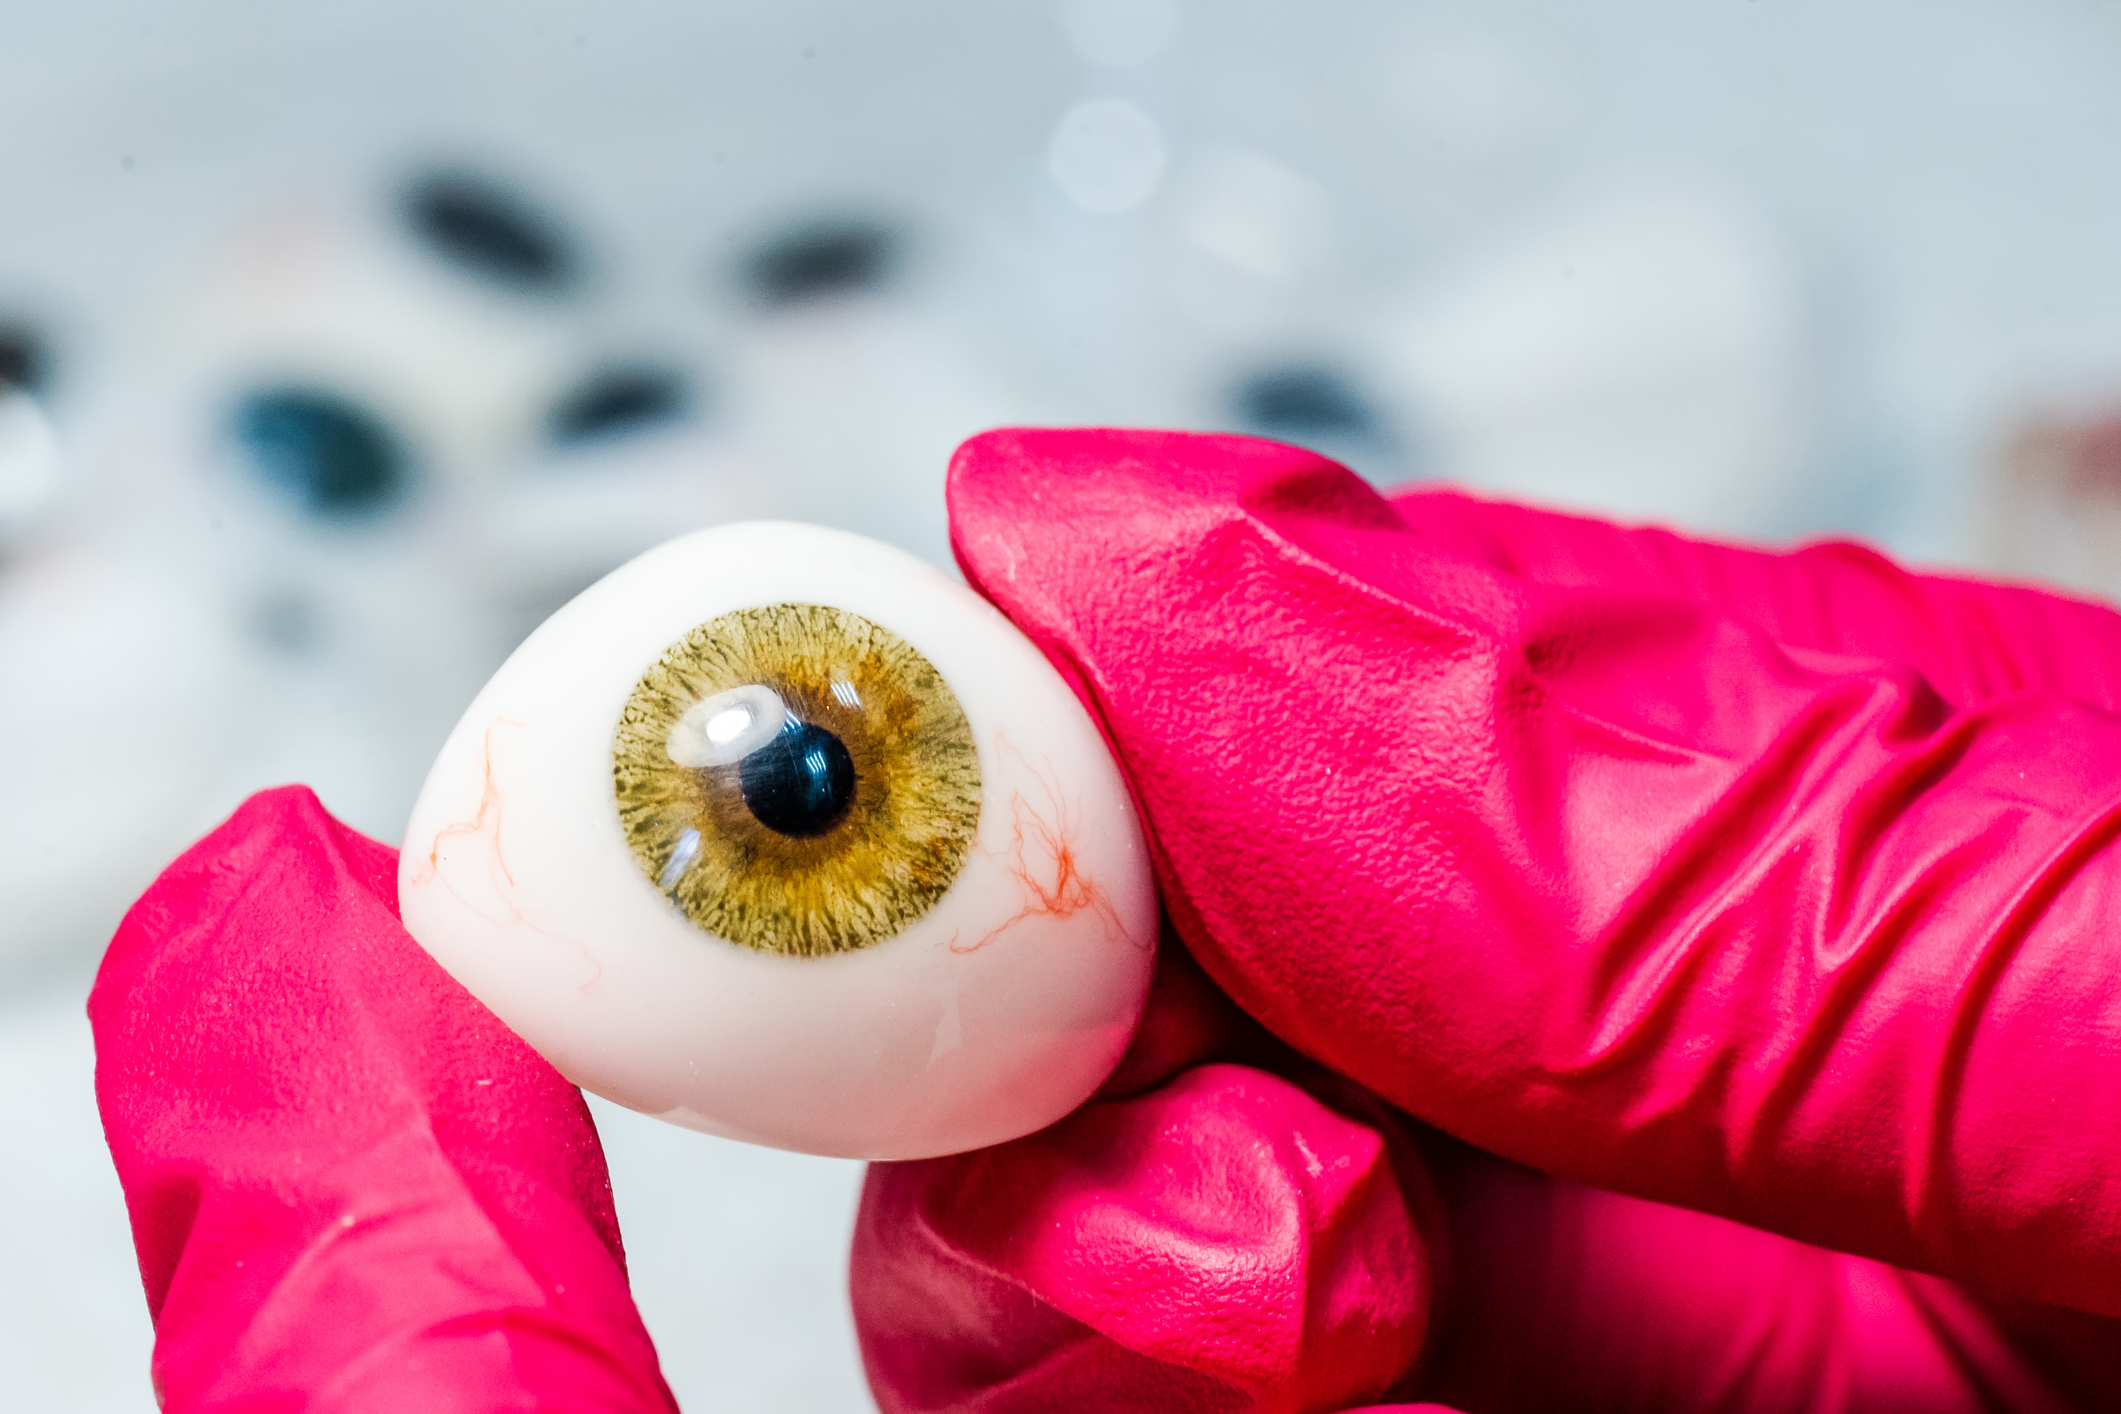 Ophthalmologist or surgeon holds an eye, eyeball prosthesis in hands. Concept photo for ocular prosthesis. Surgical operations on eyes. Closeup.